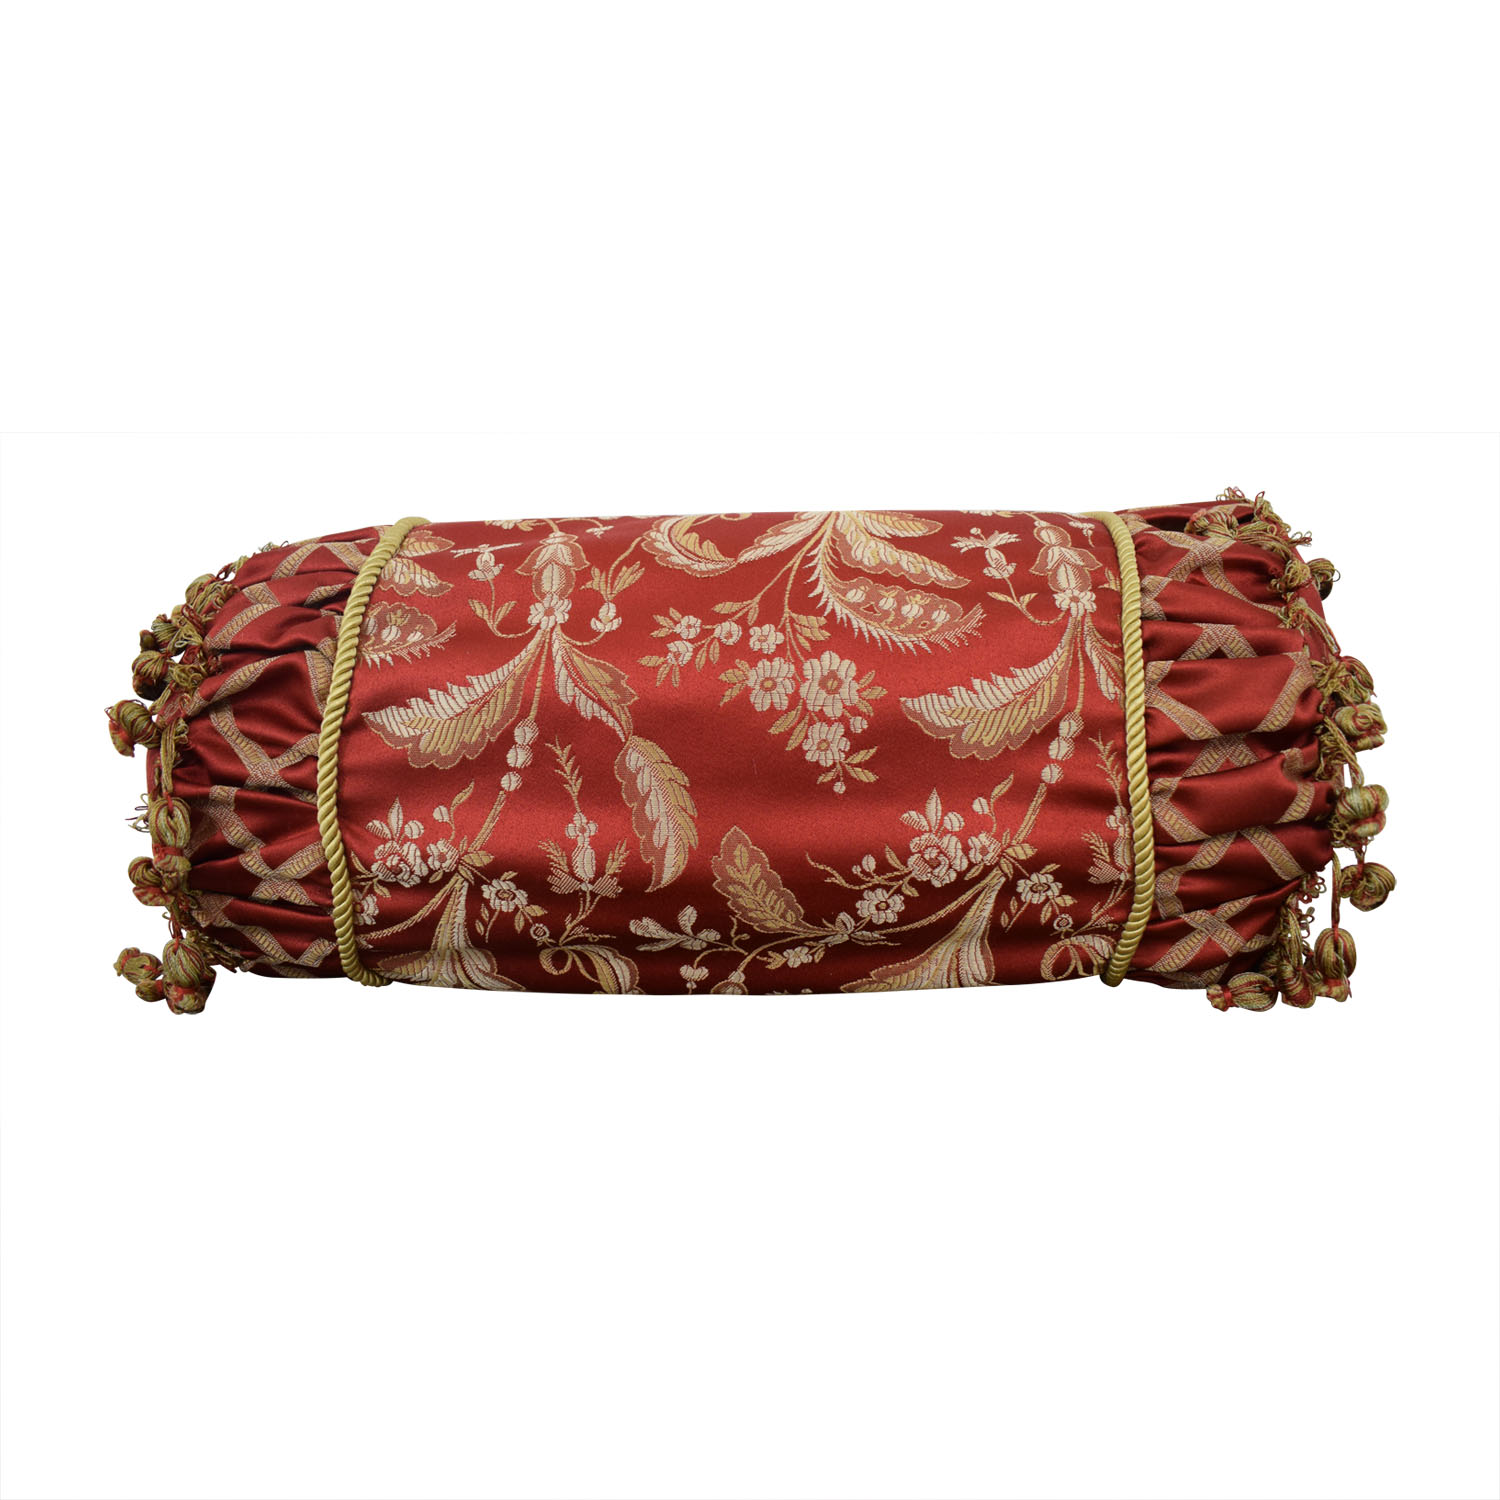 buy  Custom Red and Gold  Decorative Neck Pillow online